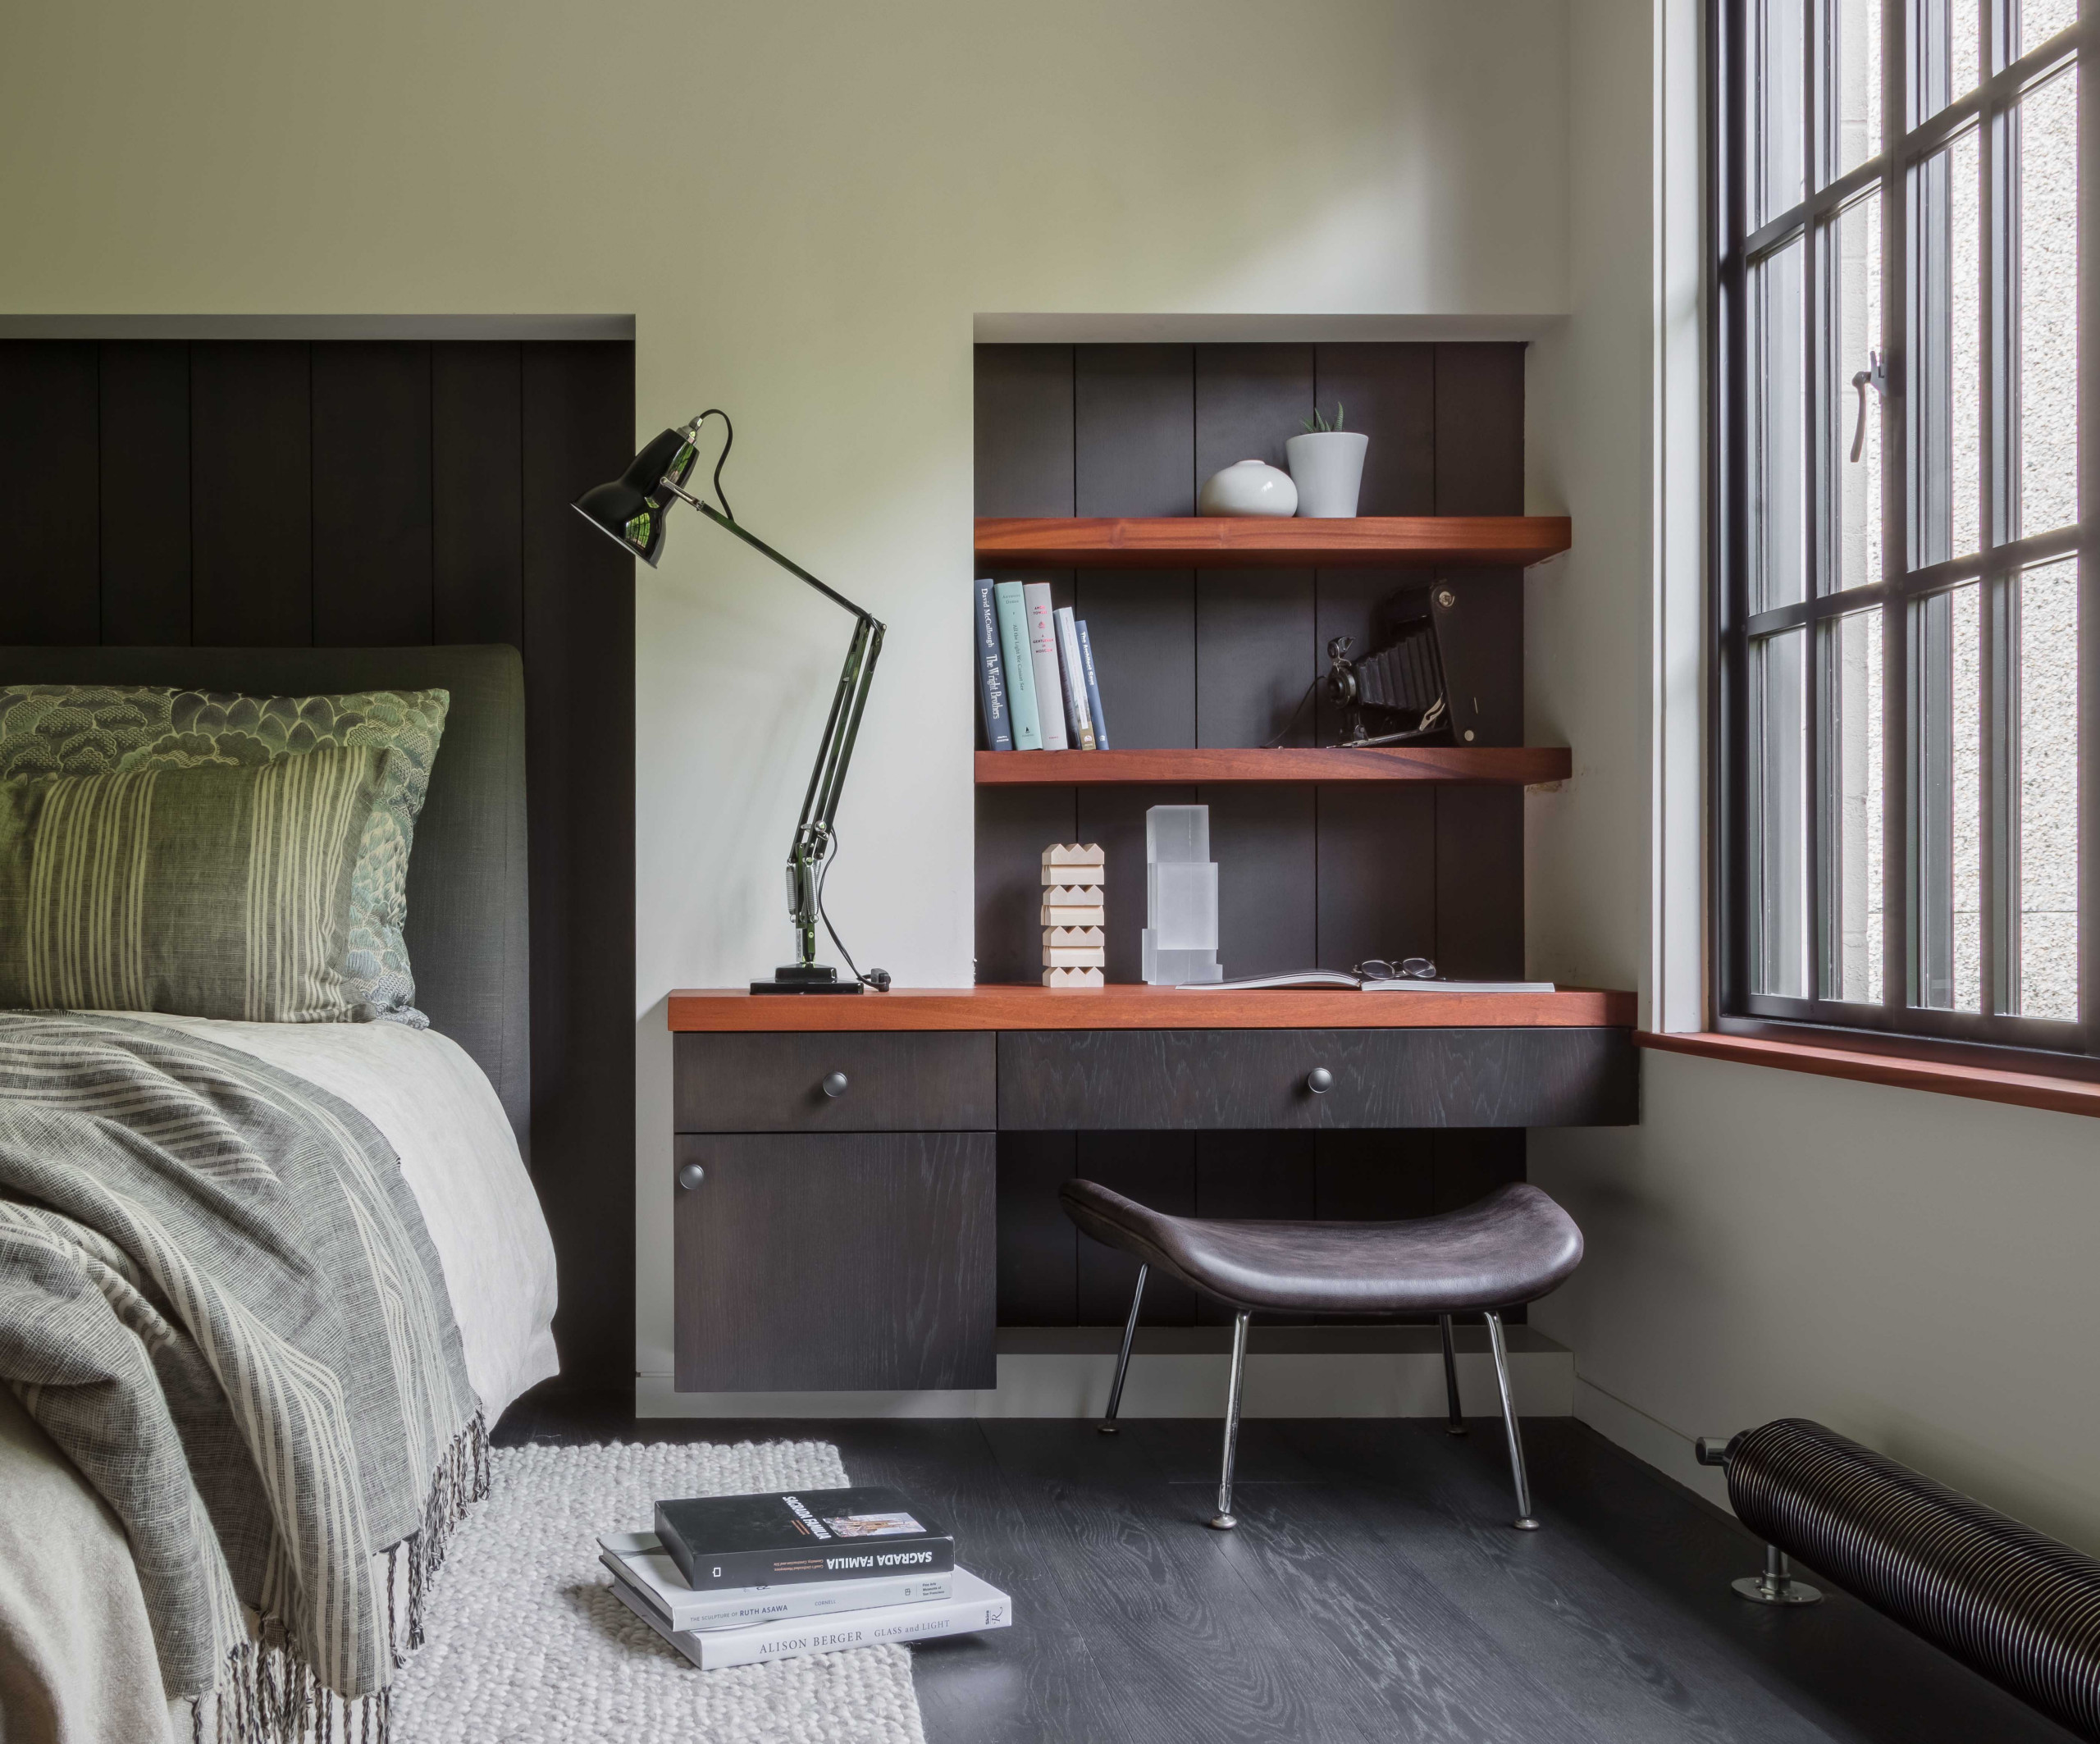 Image of: 75 Beautiful Mid Century Modern Bedroom Pictures Ideas November 2020 Houzz